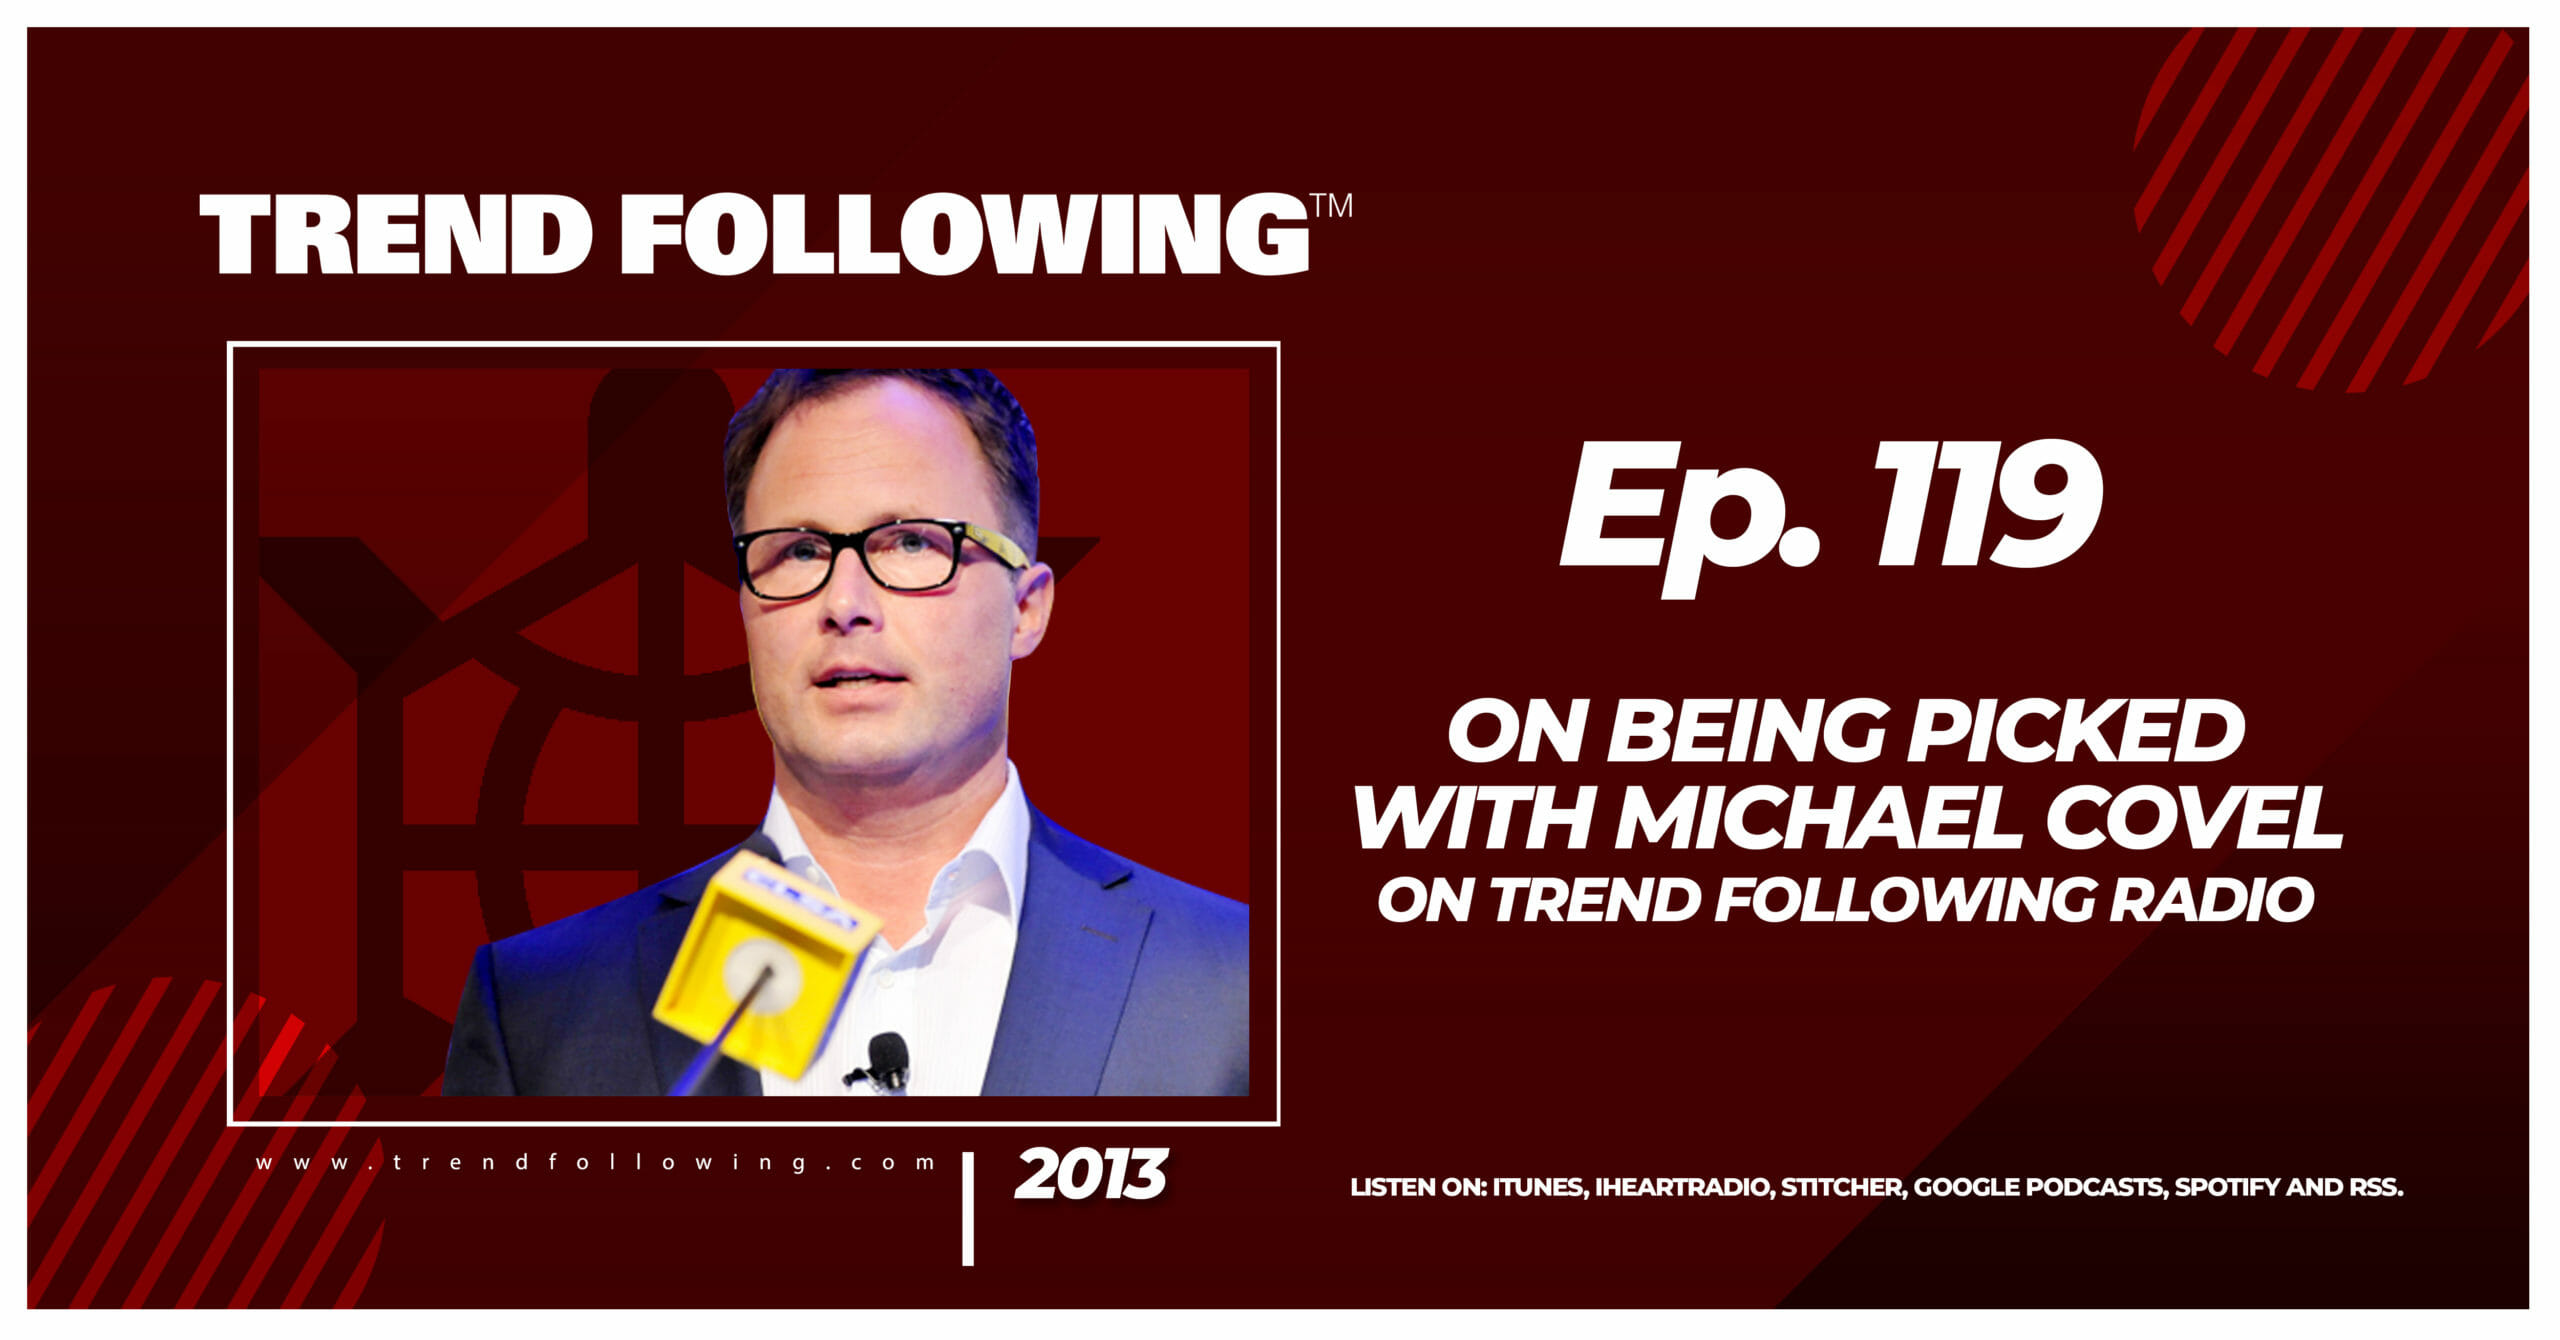 On Being Picked with Michael Covel on Trend Following Radio